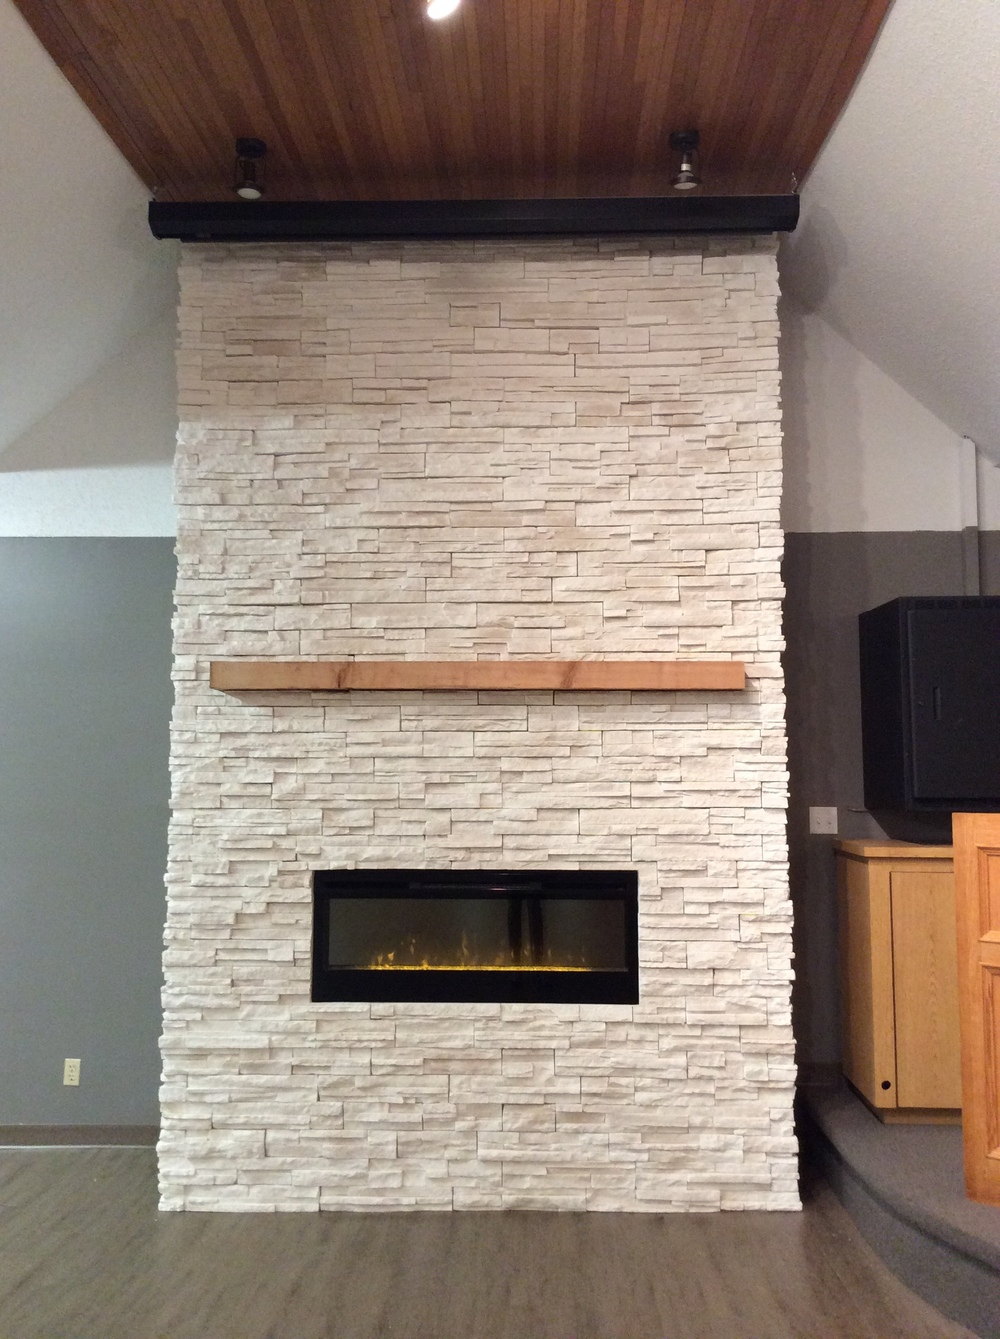 Wood look vinyl flooring, Split faced stone fireplace, rustic mantel.